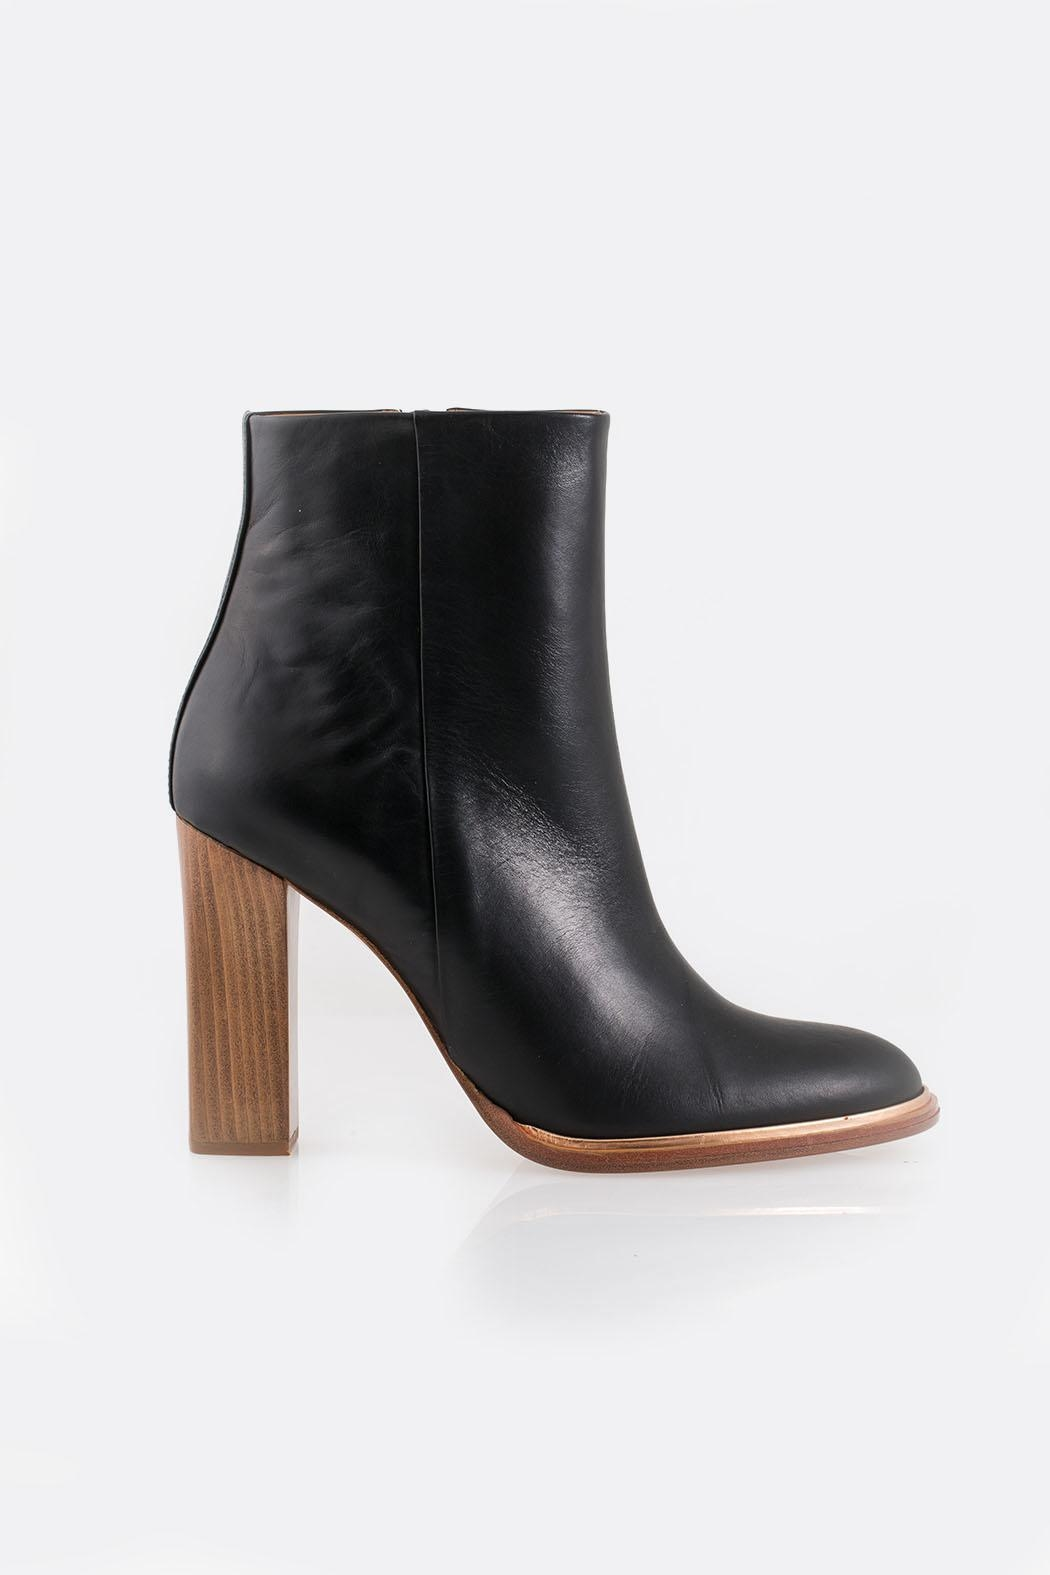 Veronique Branquinho Black Heeled Bootie - Front Full Image